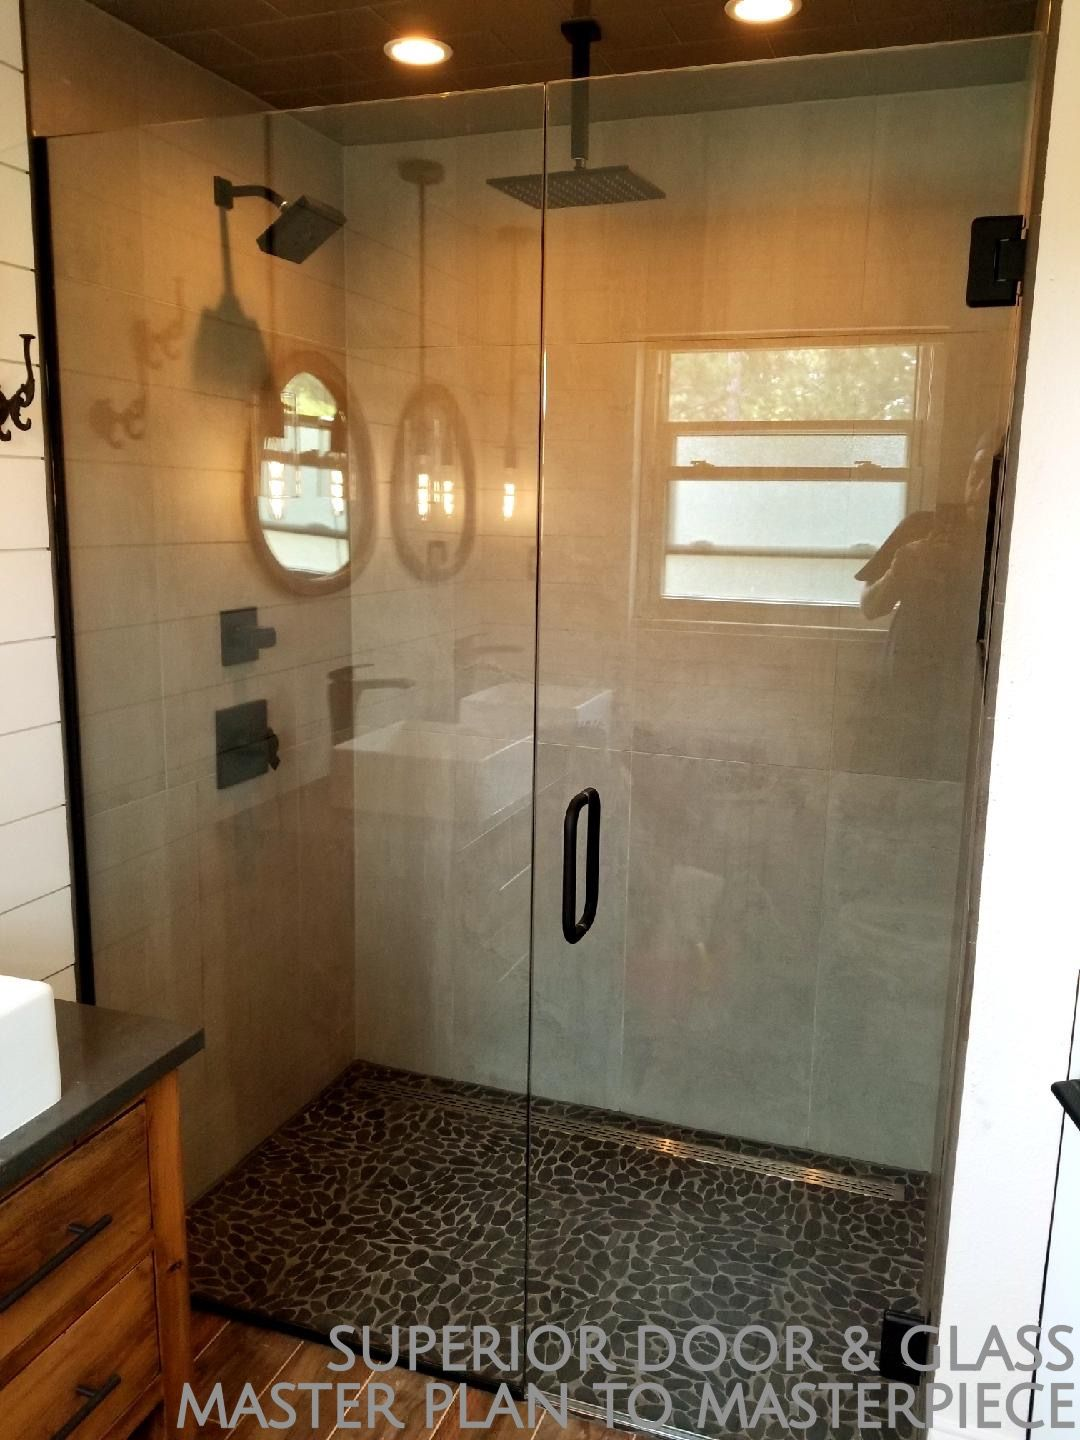 Superior Door Glass Installed This Terrific Frameless Shower Door And Enclosure Look How Wonderful The Tiles And Rock Floor Are Shown Off Fra With Images Shower Doors